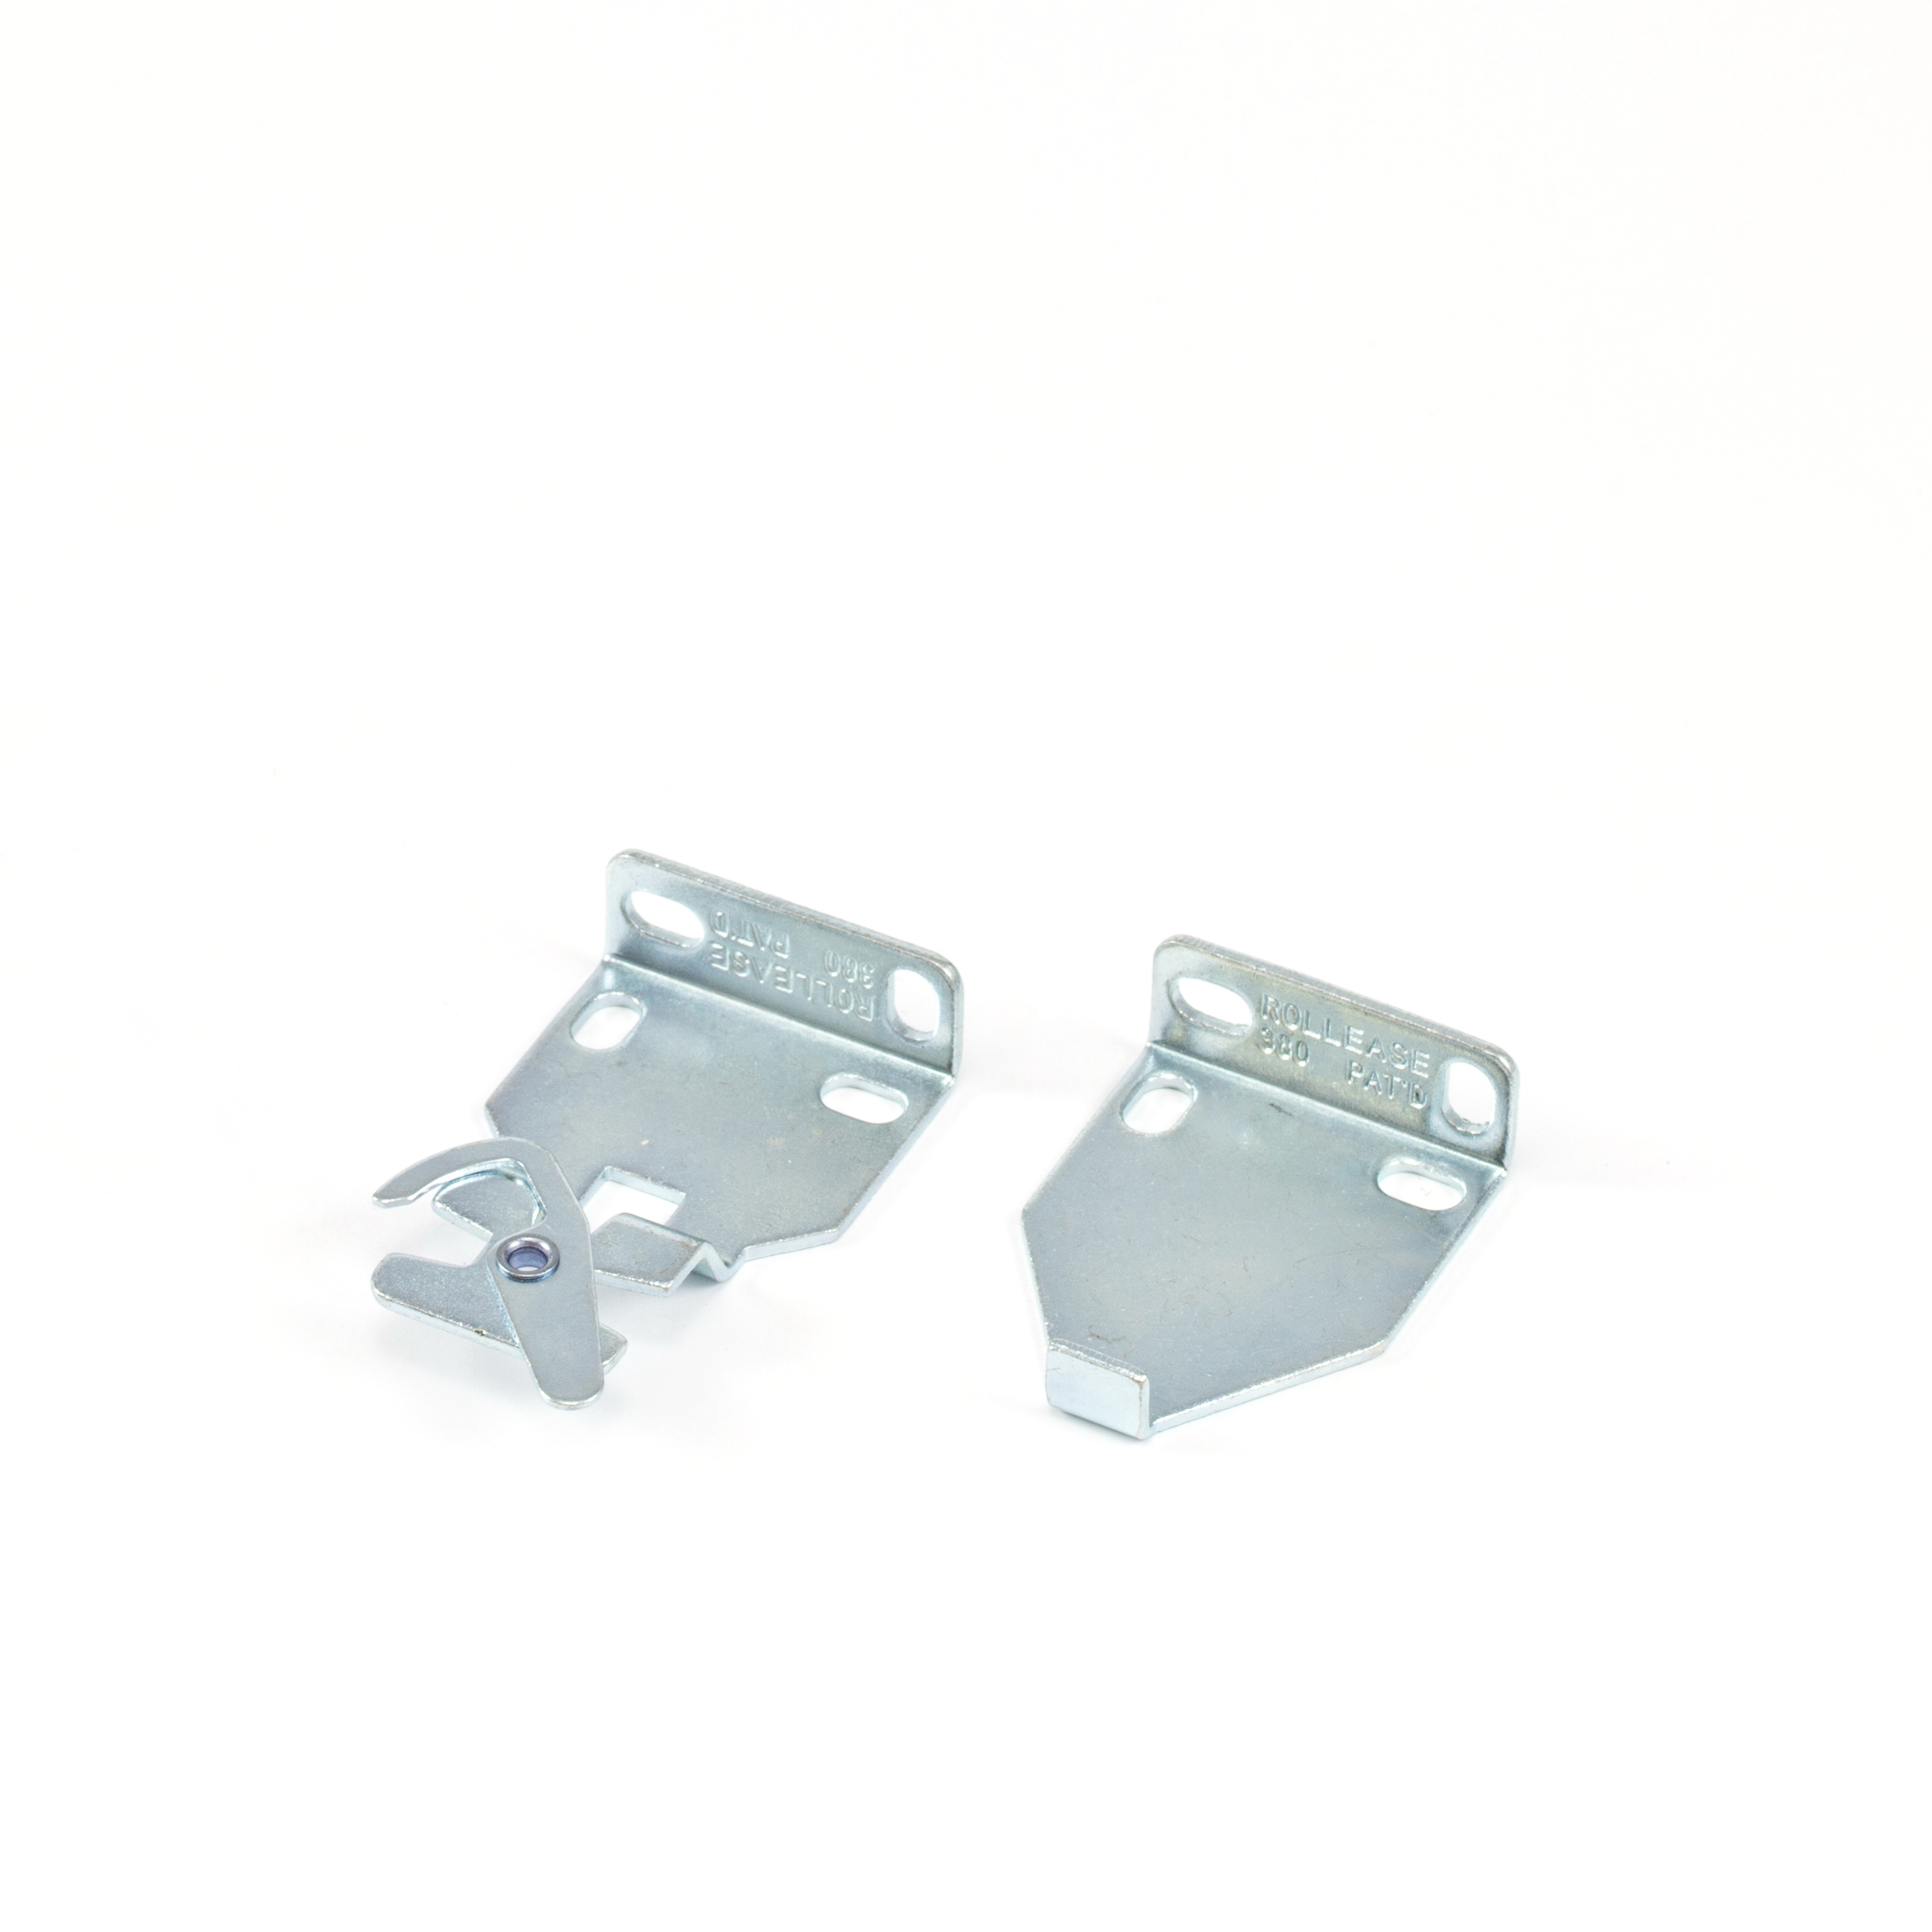 Thumbnail RollEase Mounting Bracket for R-3/ R-8 Clutch 2 2